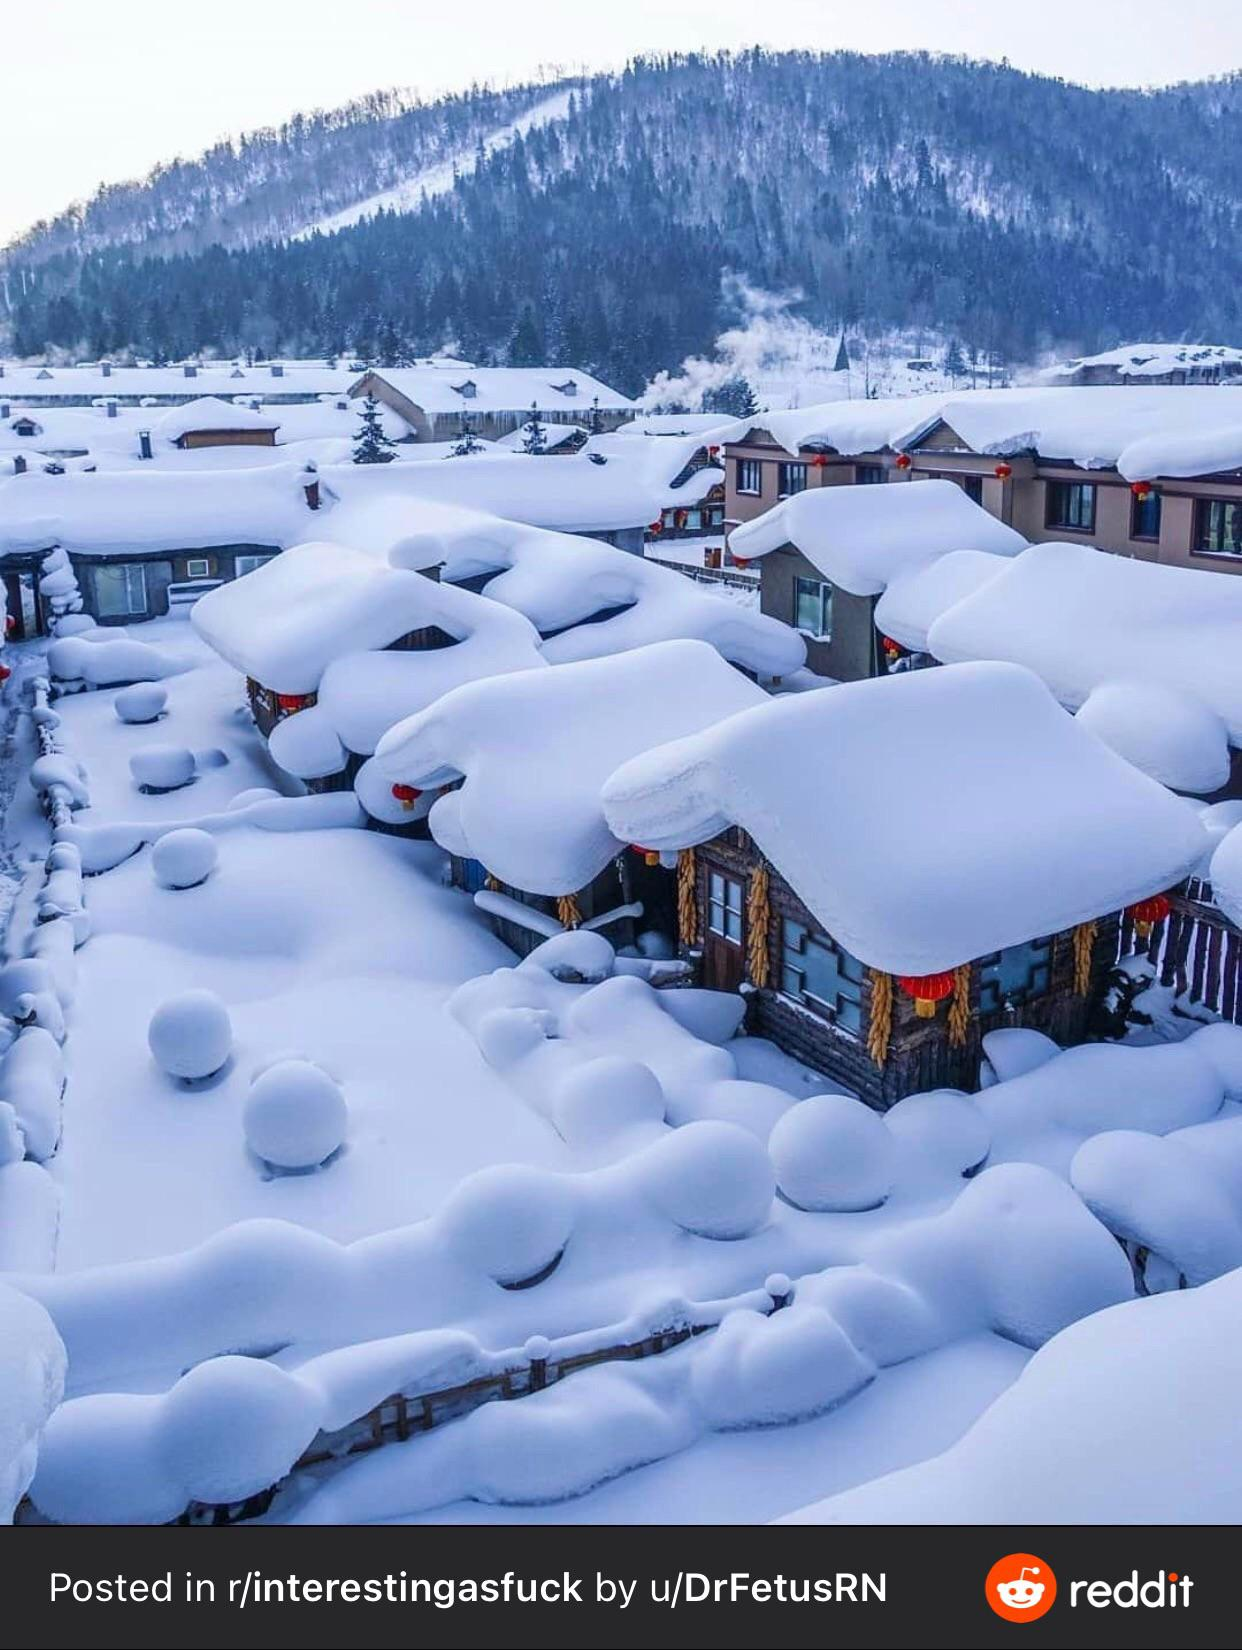 The way the snowfall covers this town